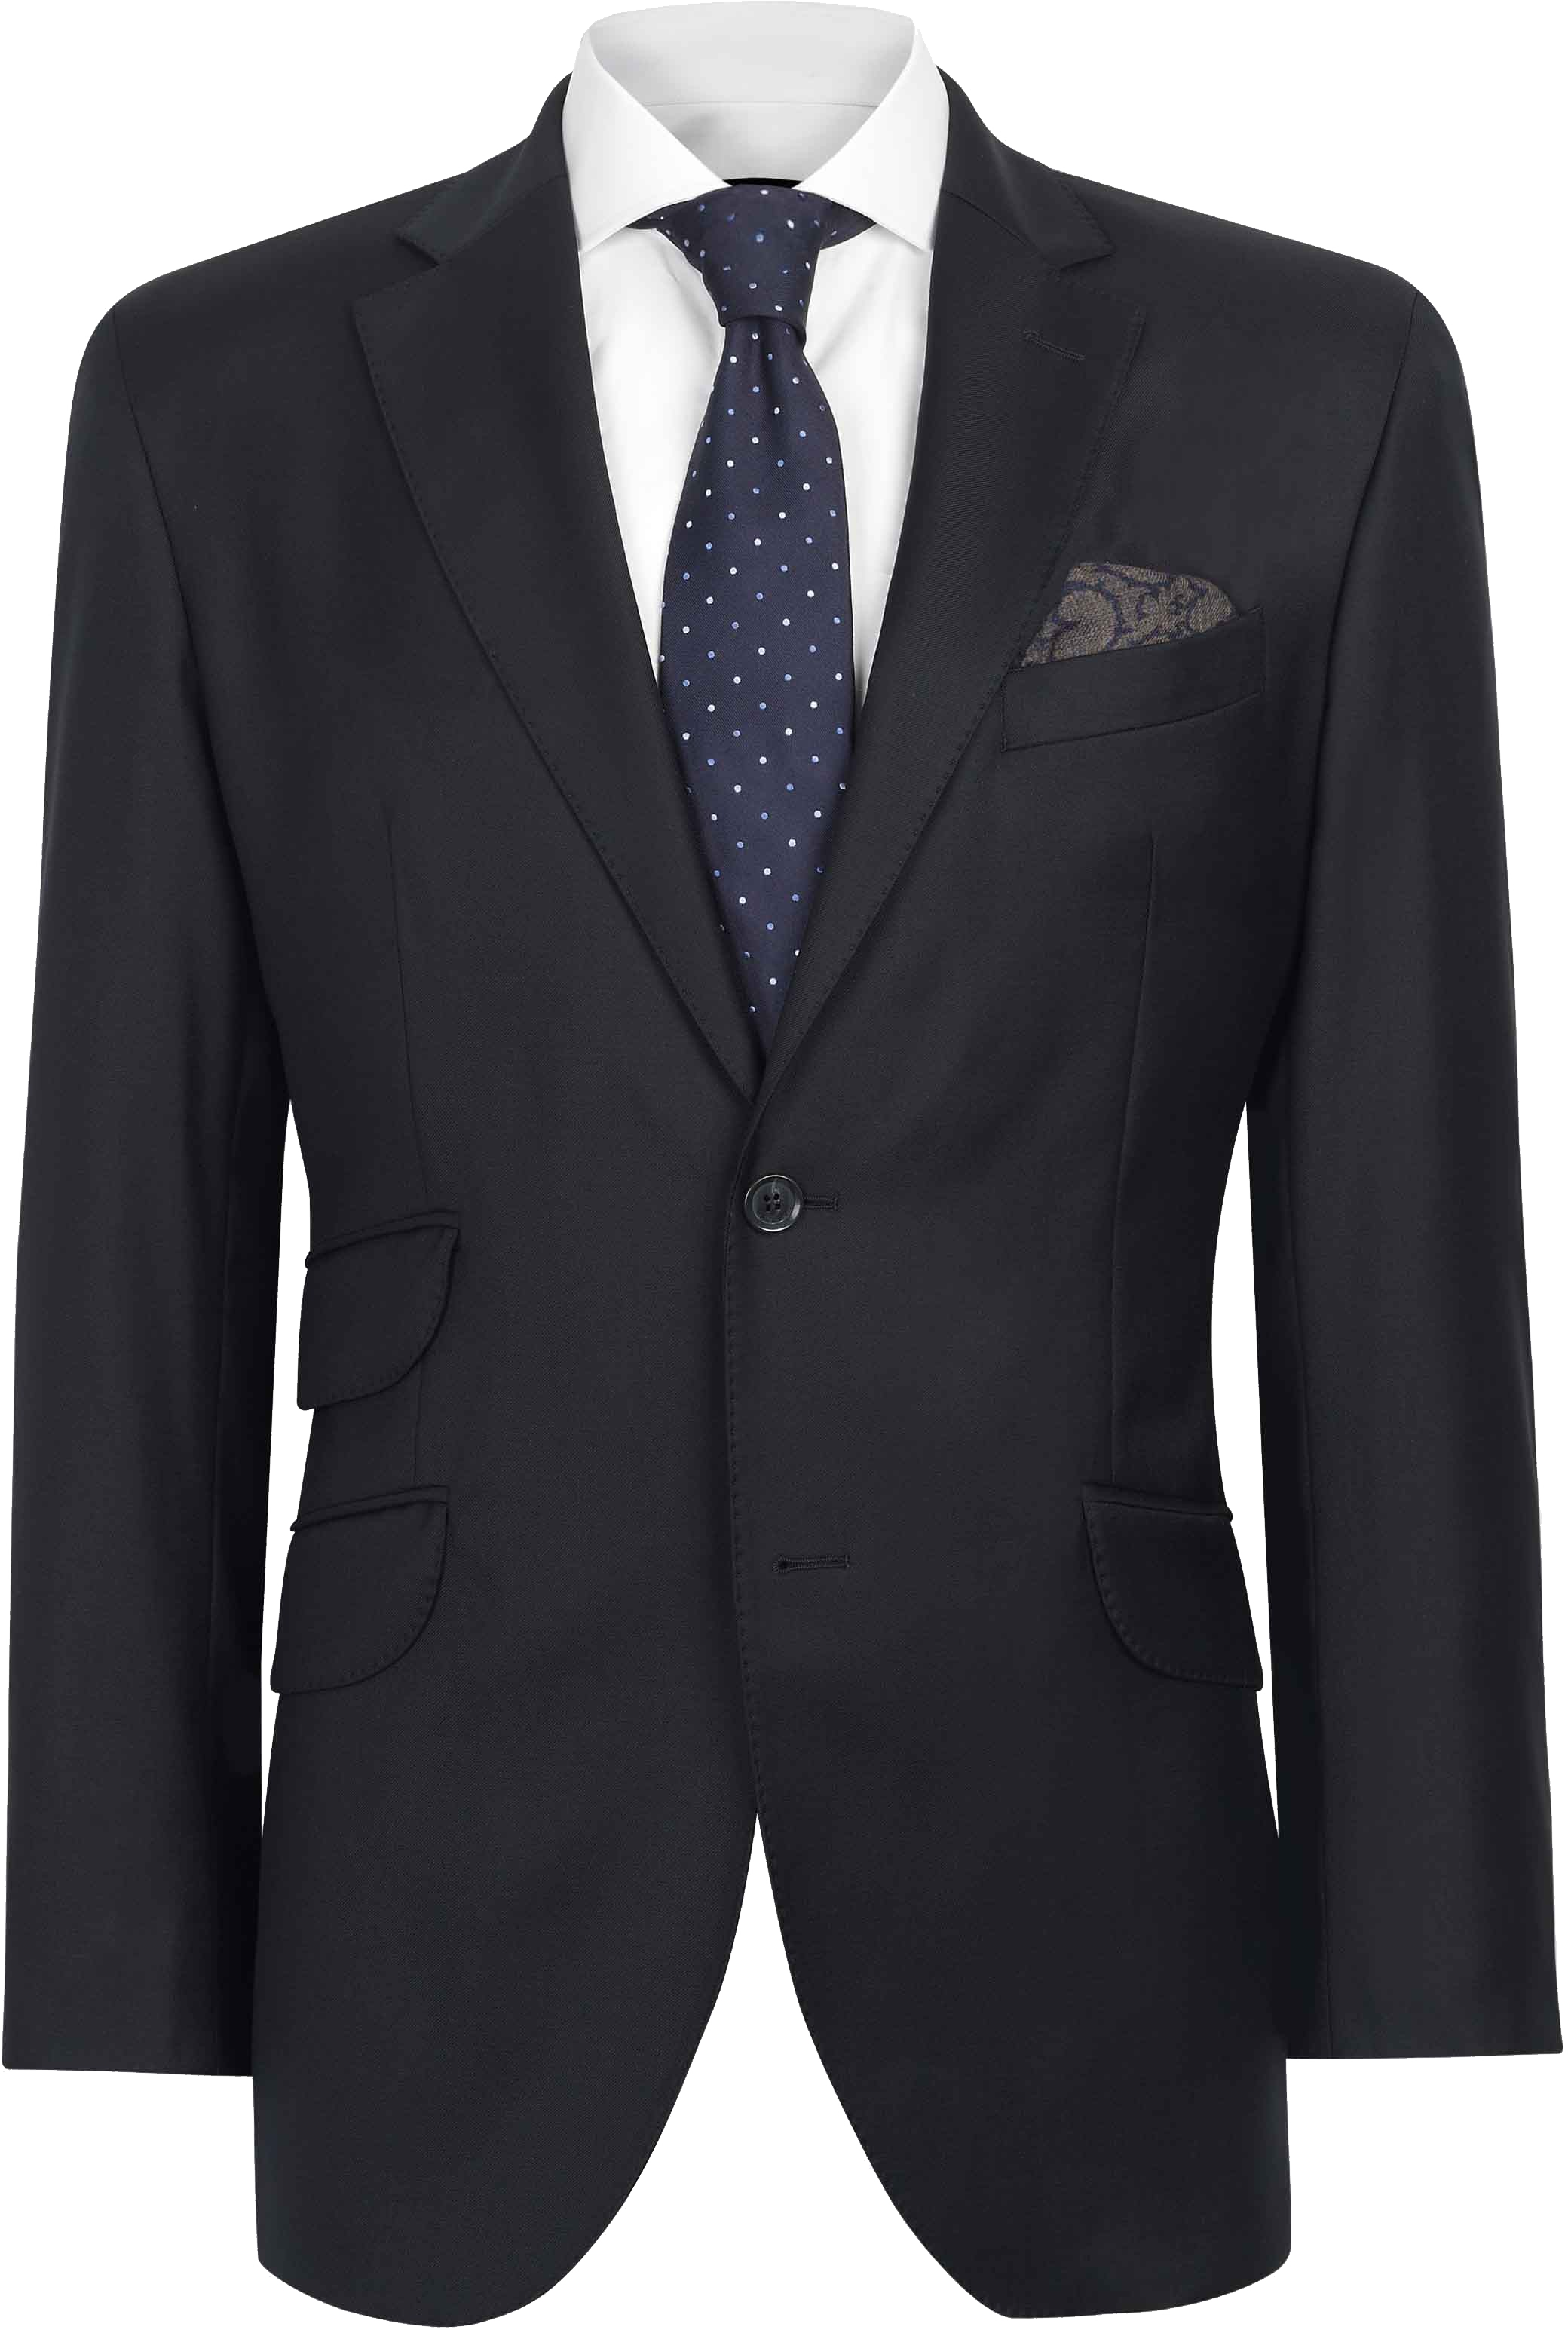 Suit PNG image - Coat PNG HD